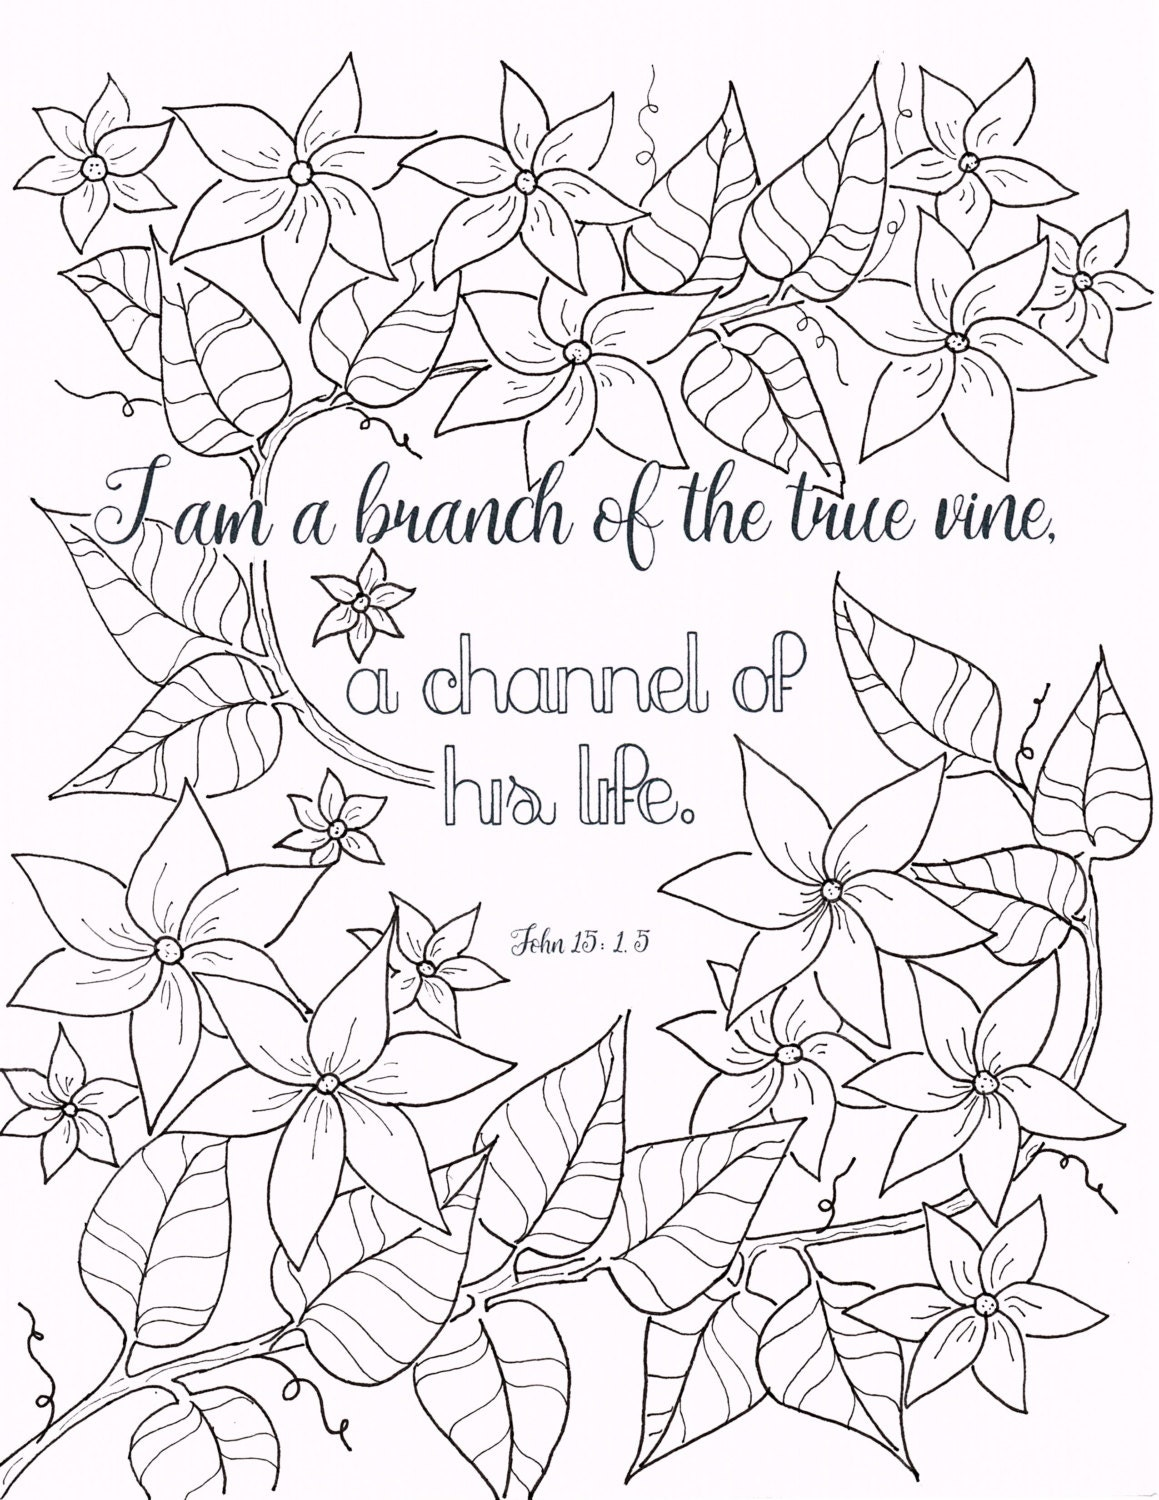 who i am in christ john 15 1 christian coloring page